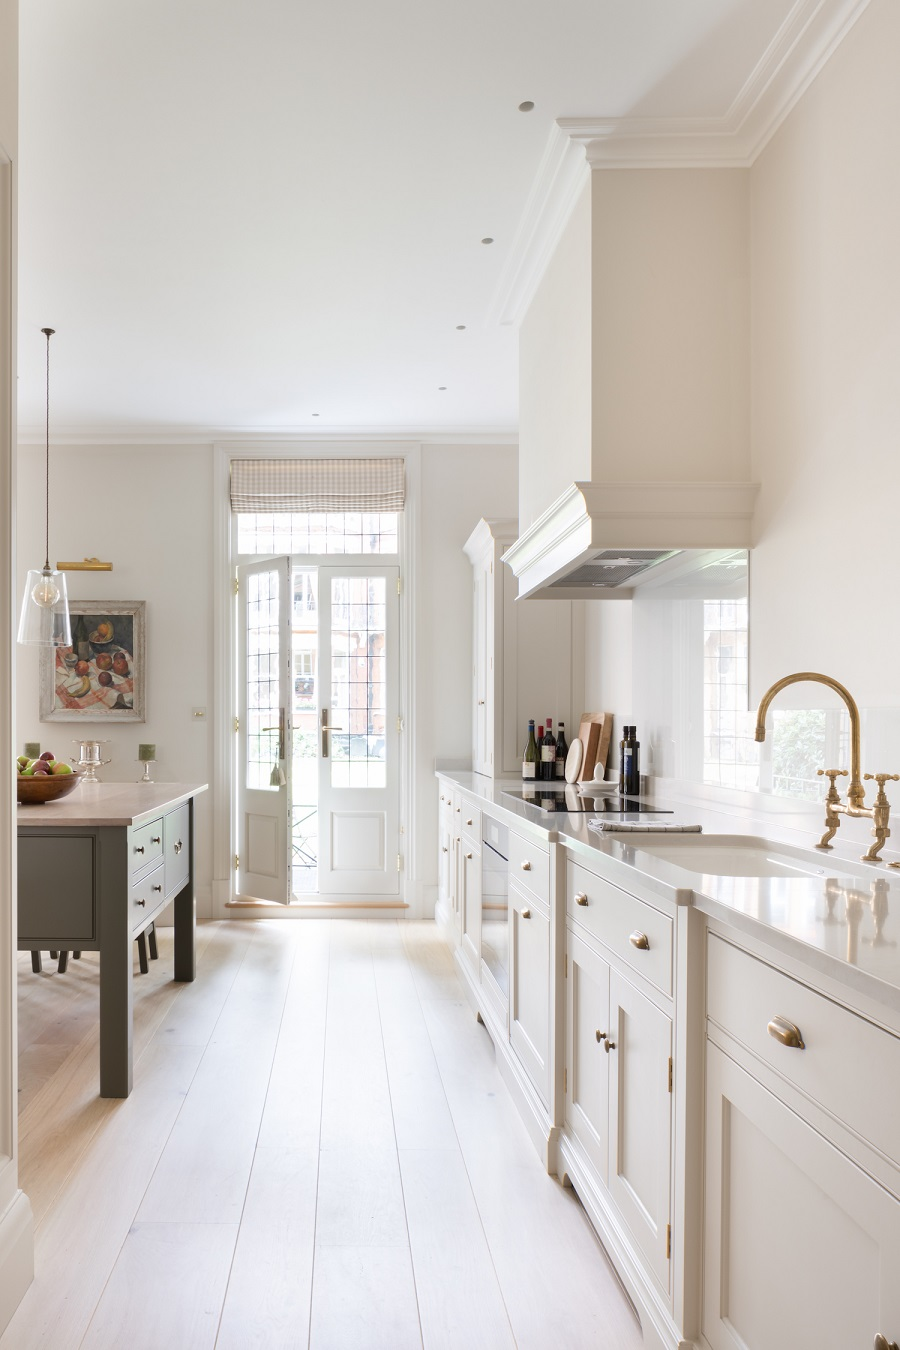 A Light and Airy Kitchen With a Timeless Design